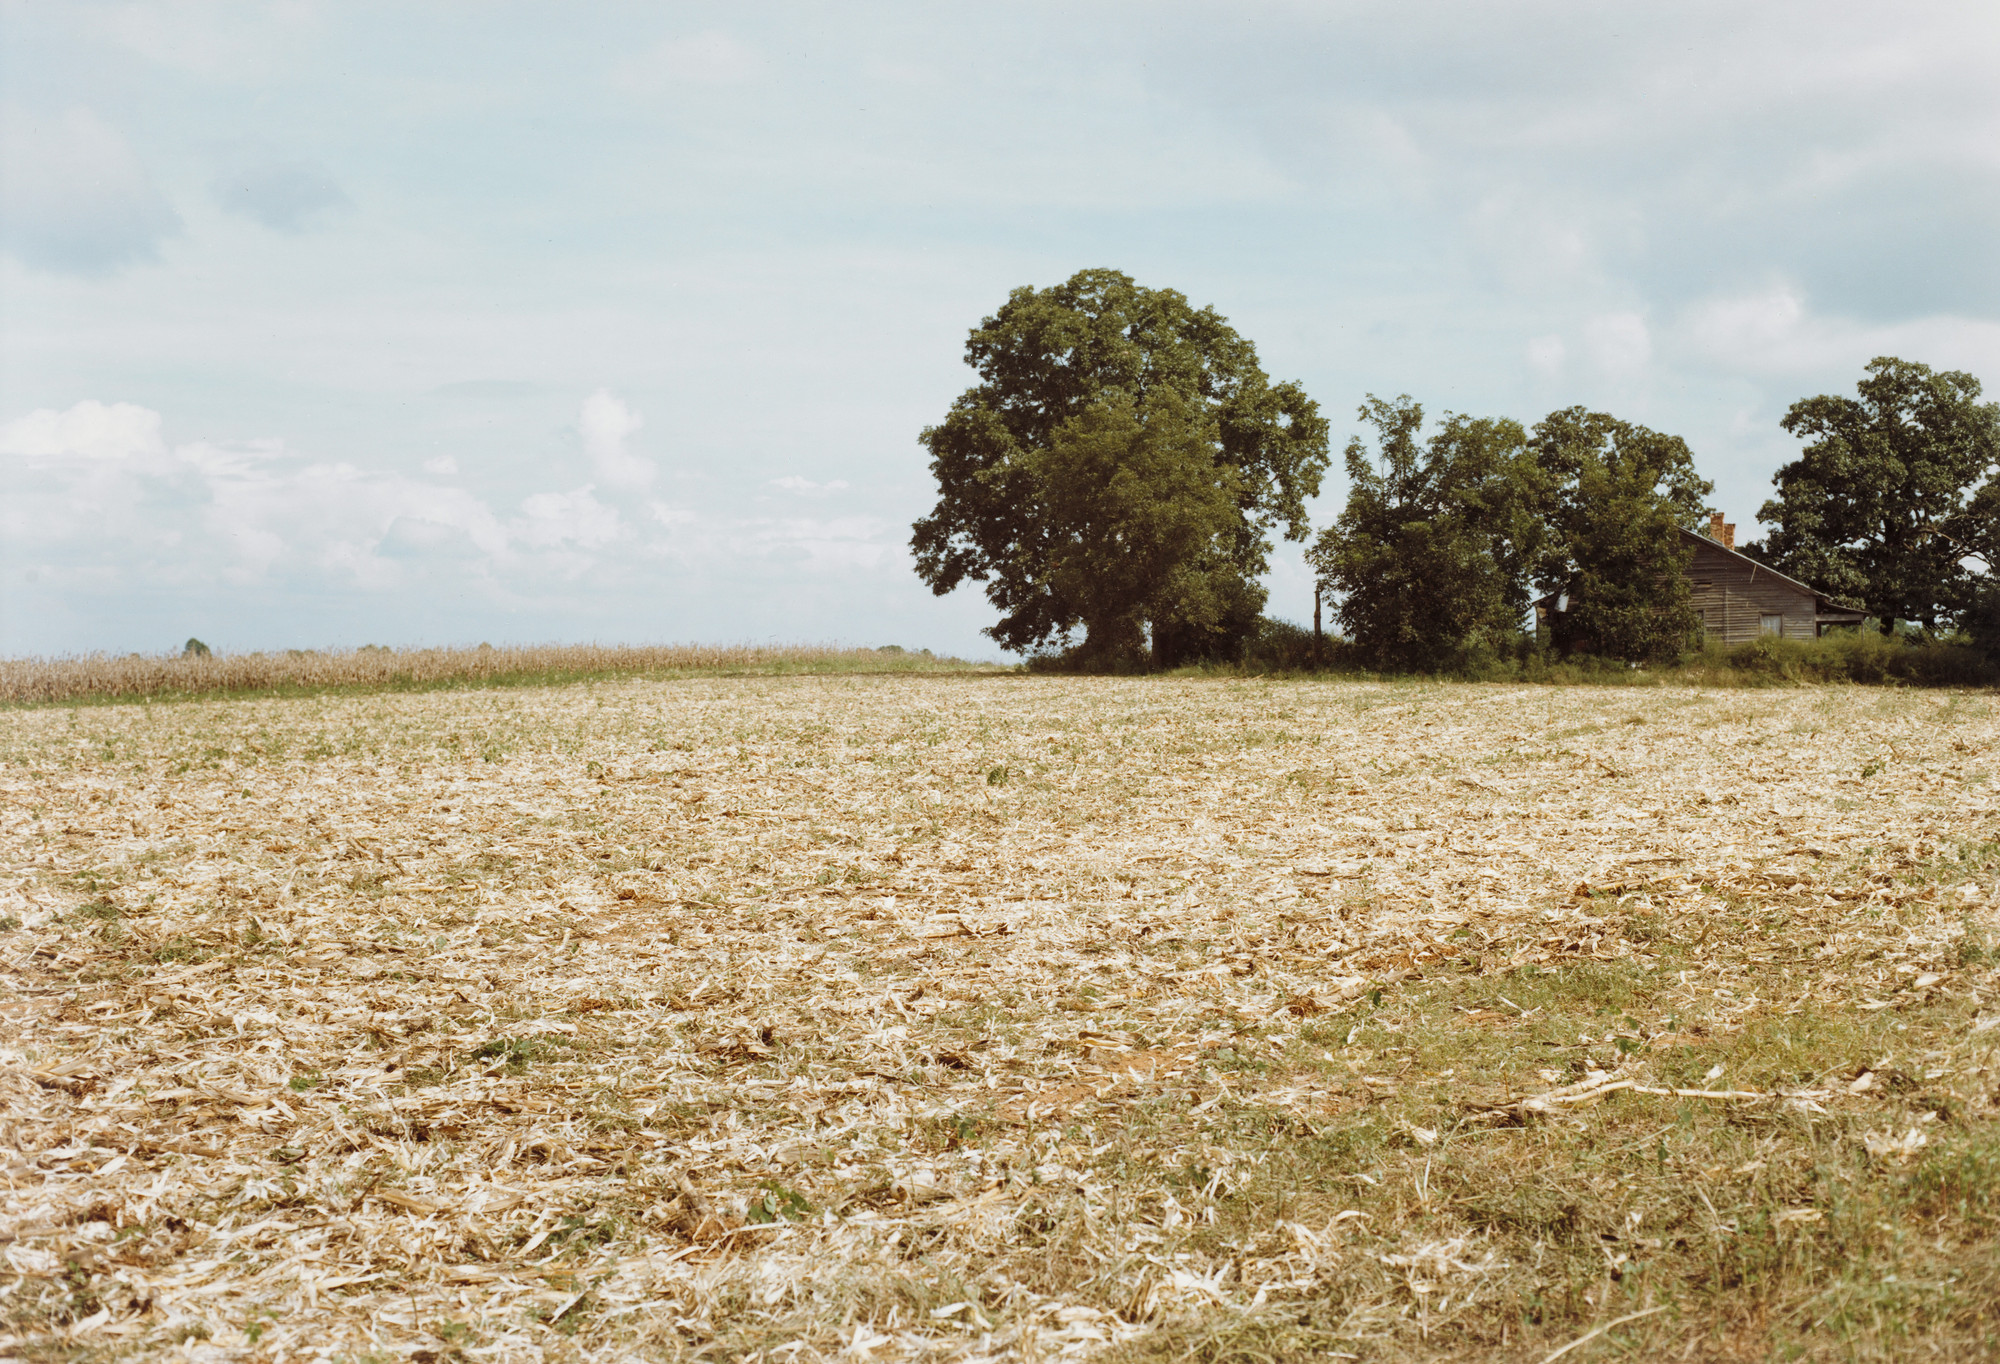 William Eggleston. Between Plains and Friendship, Georgia. 1976